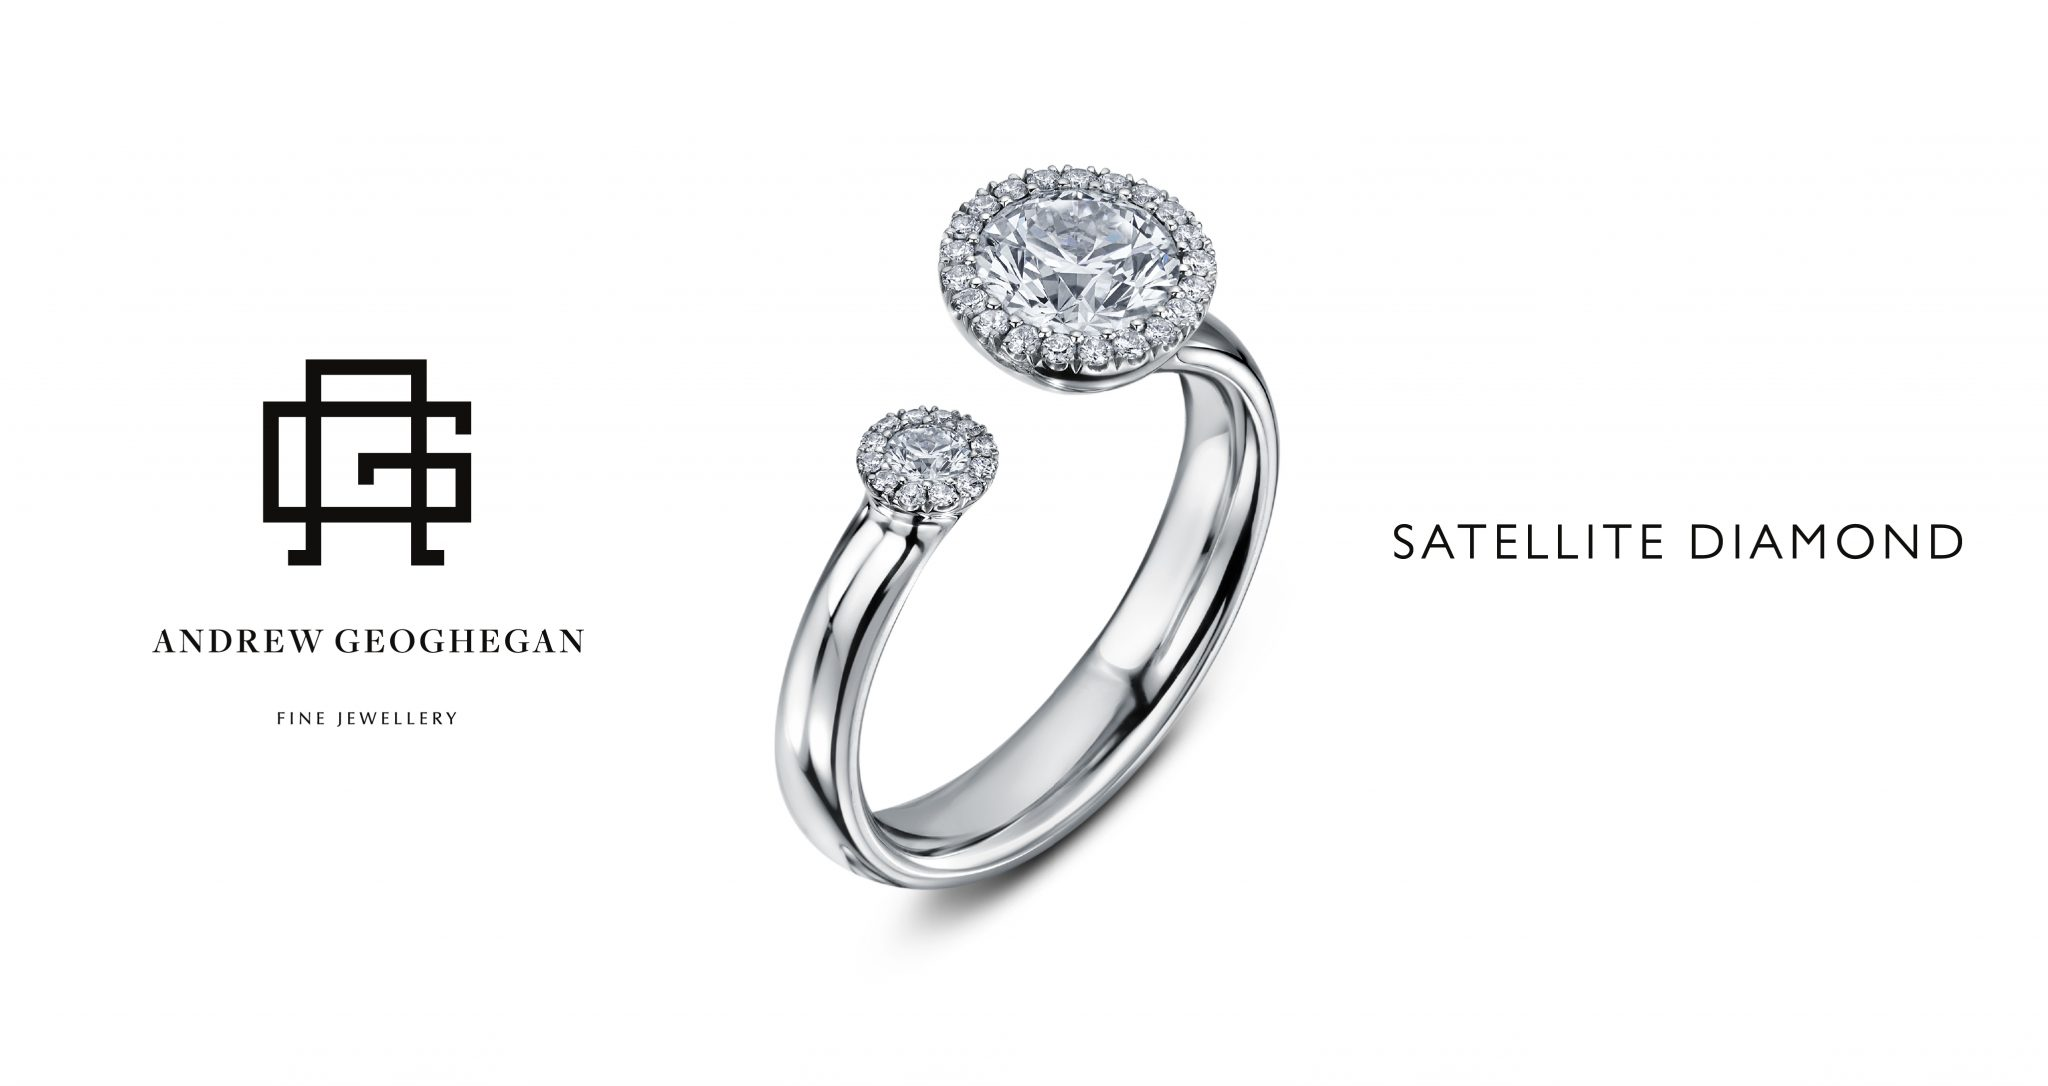 Satellite Diamond ring, Drakes Diamond Ring, Drakes Jewellers, Andrew Geoghegan